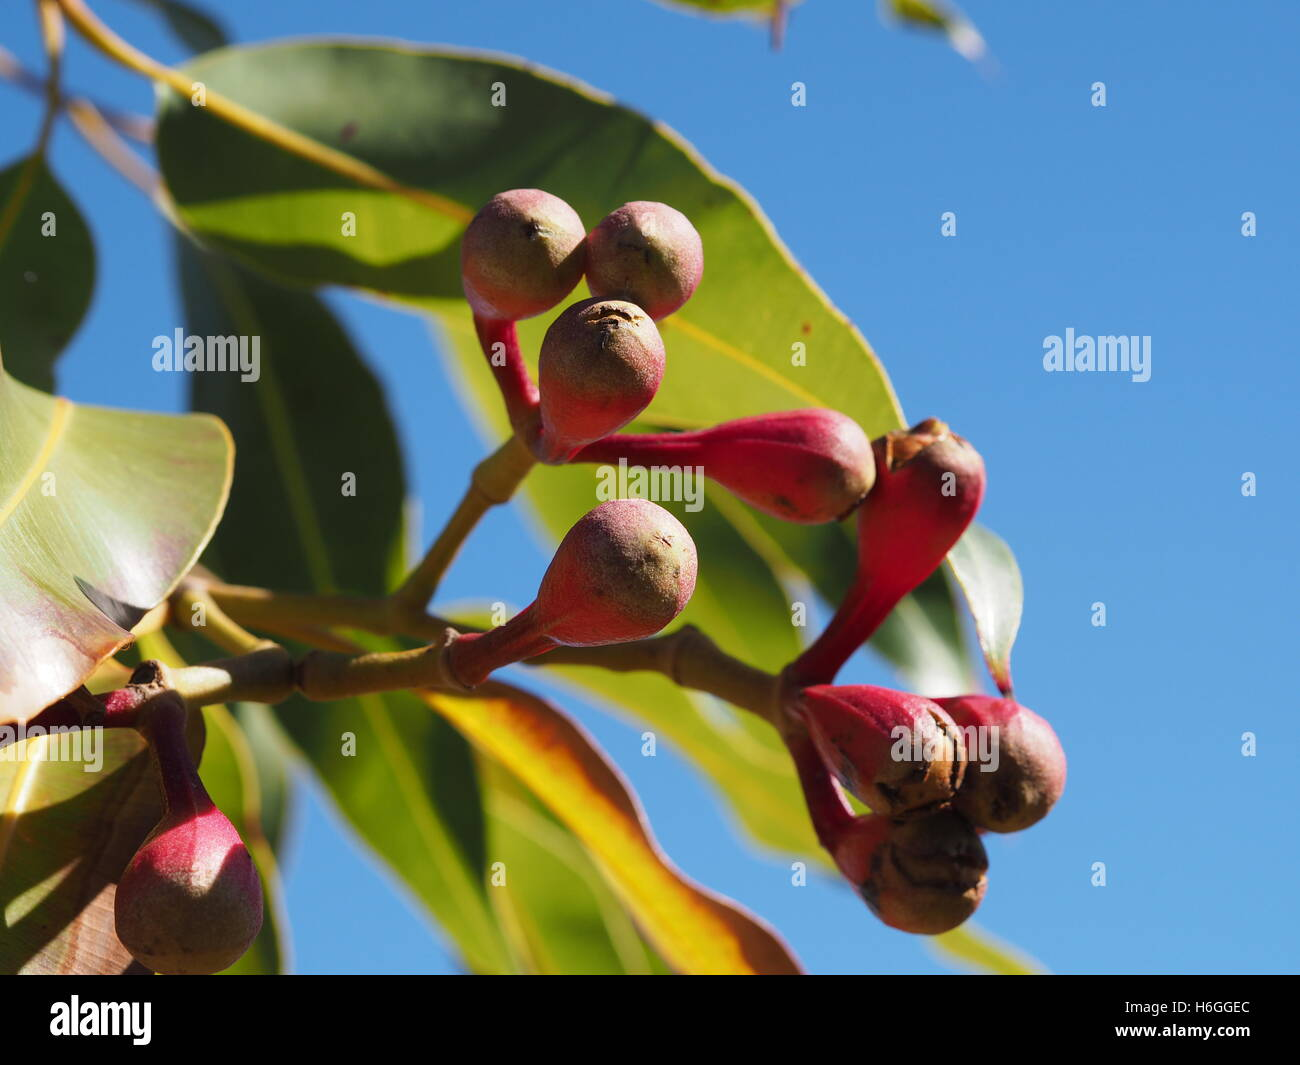 Red berries in the Australian sunshine in front of green leafs and a blue sky - Stock Image